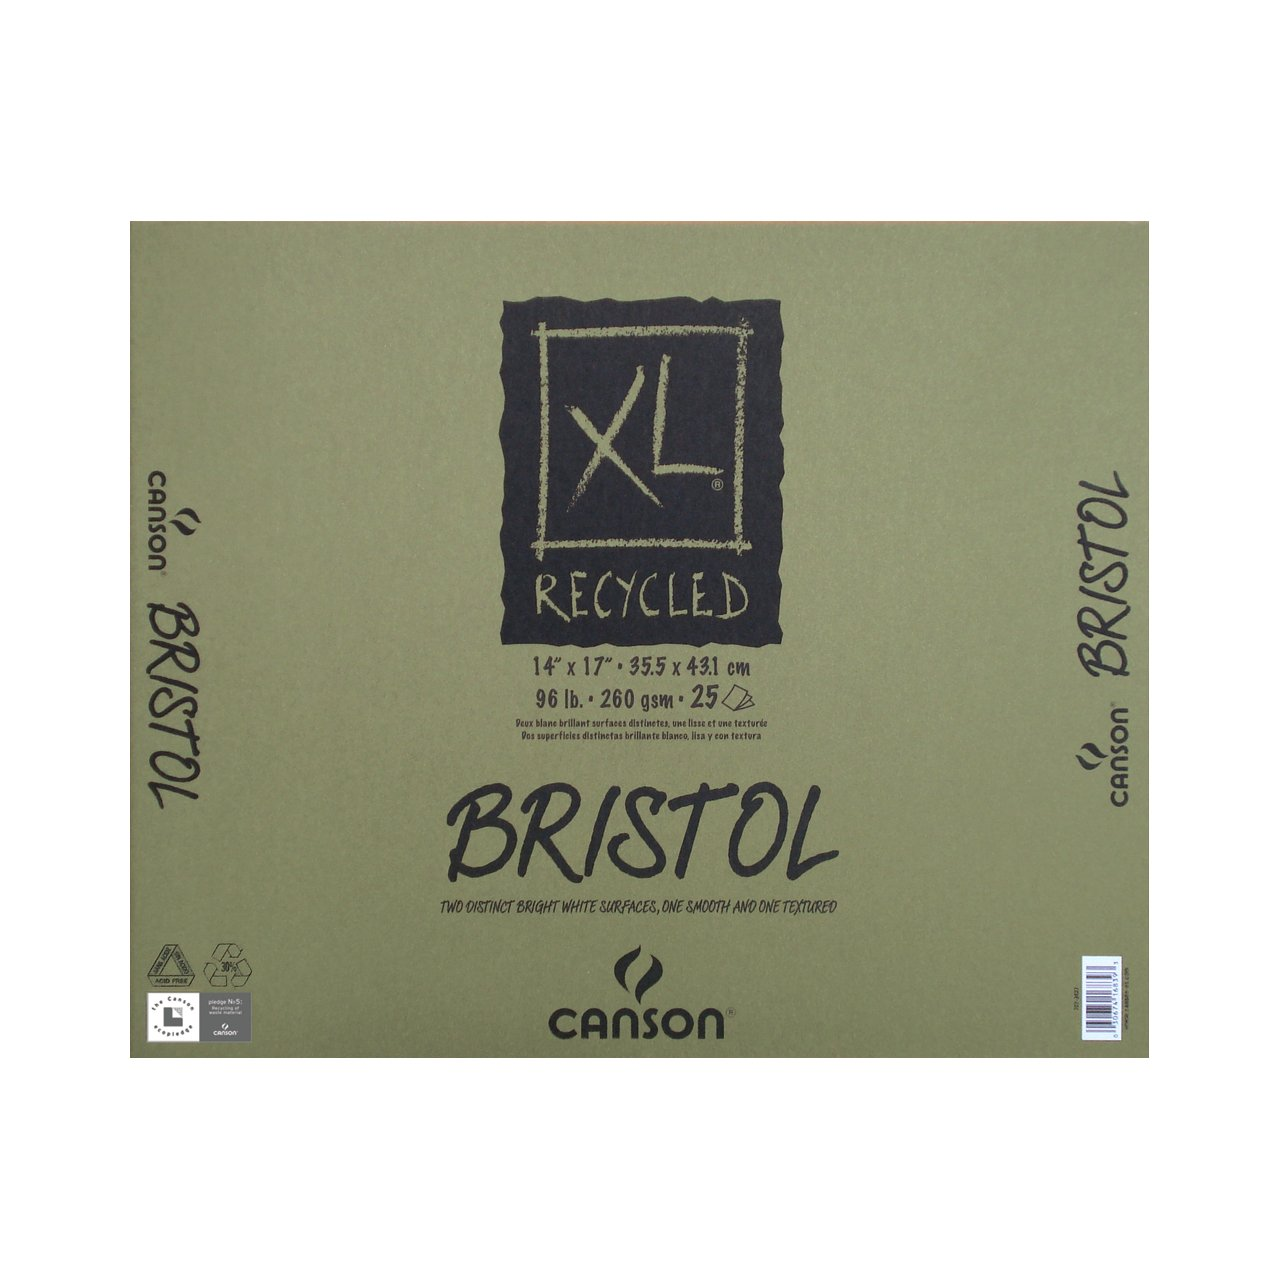 Canson XL Recycled Bristol Pads, 14 x 17 25 Shts./Pad